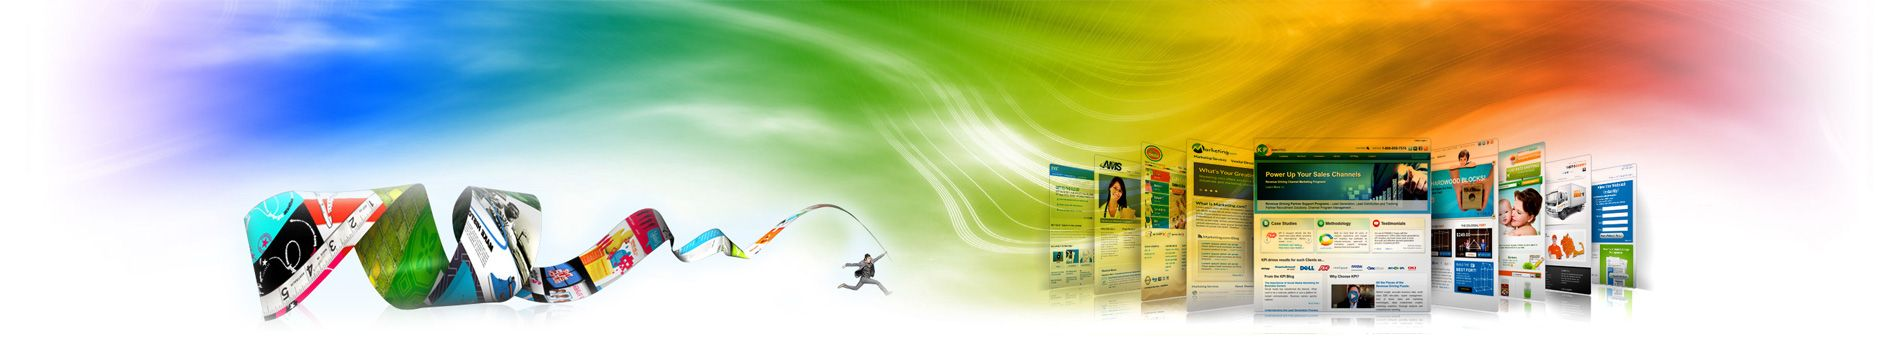 freelance web graphics hyderabad, freelance logo designer, freelance local graphic designer in hyderabad